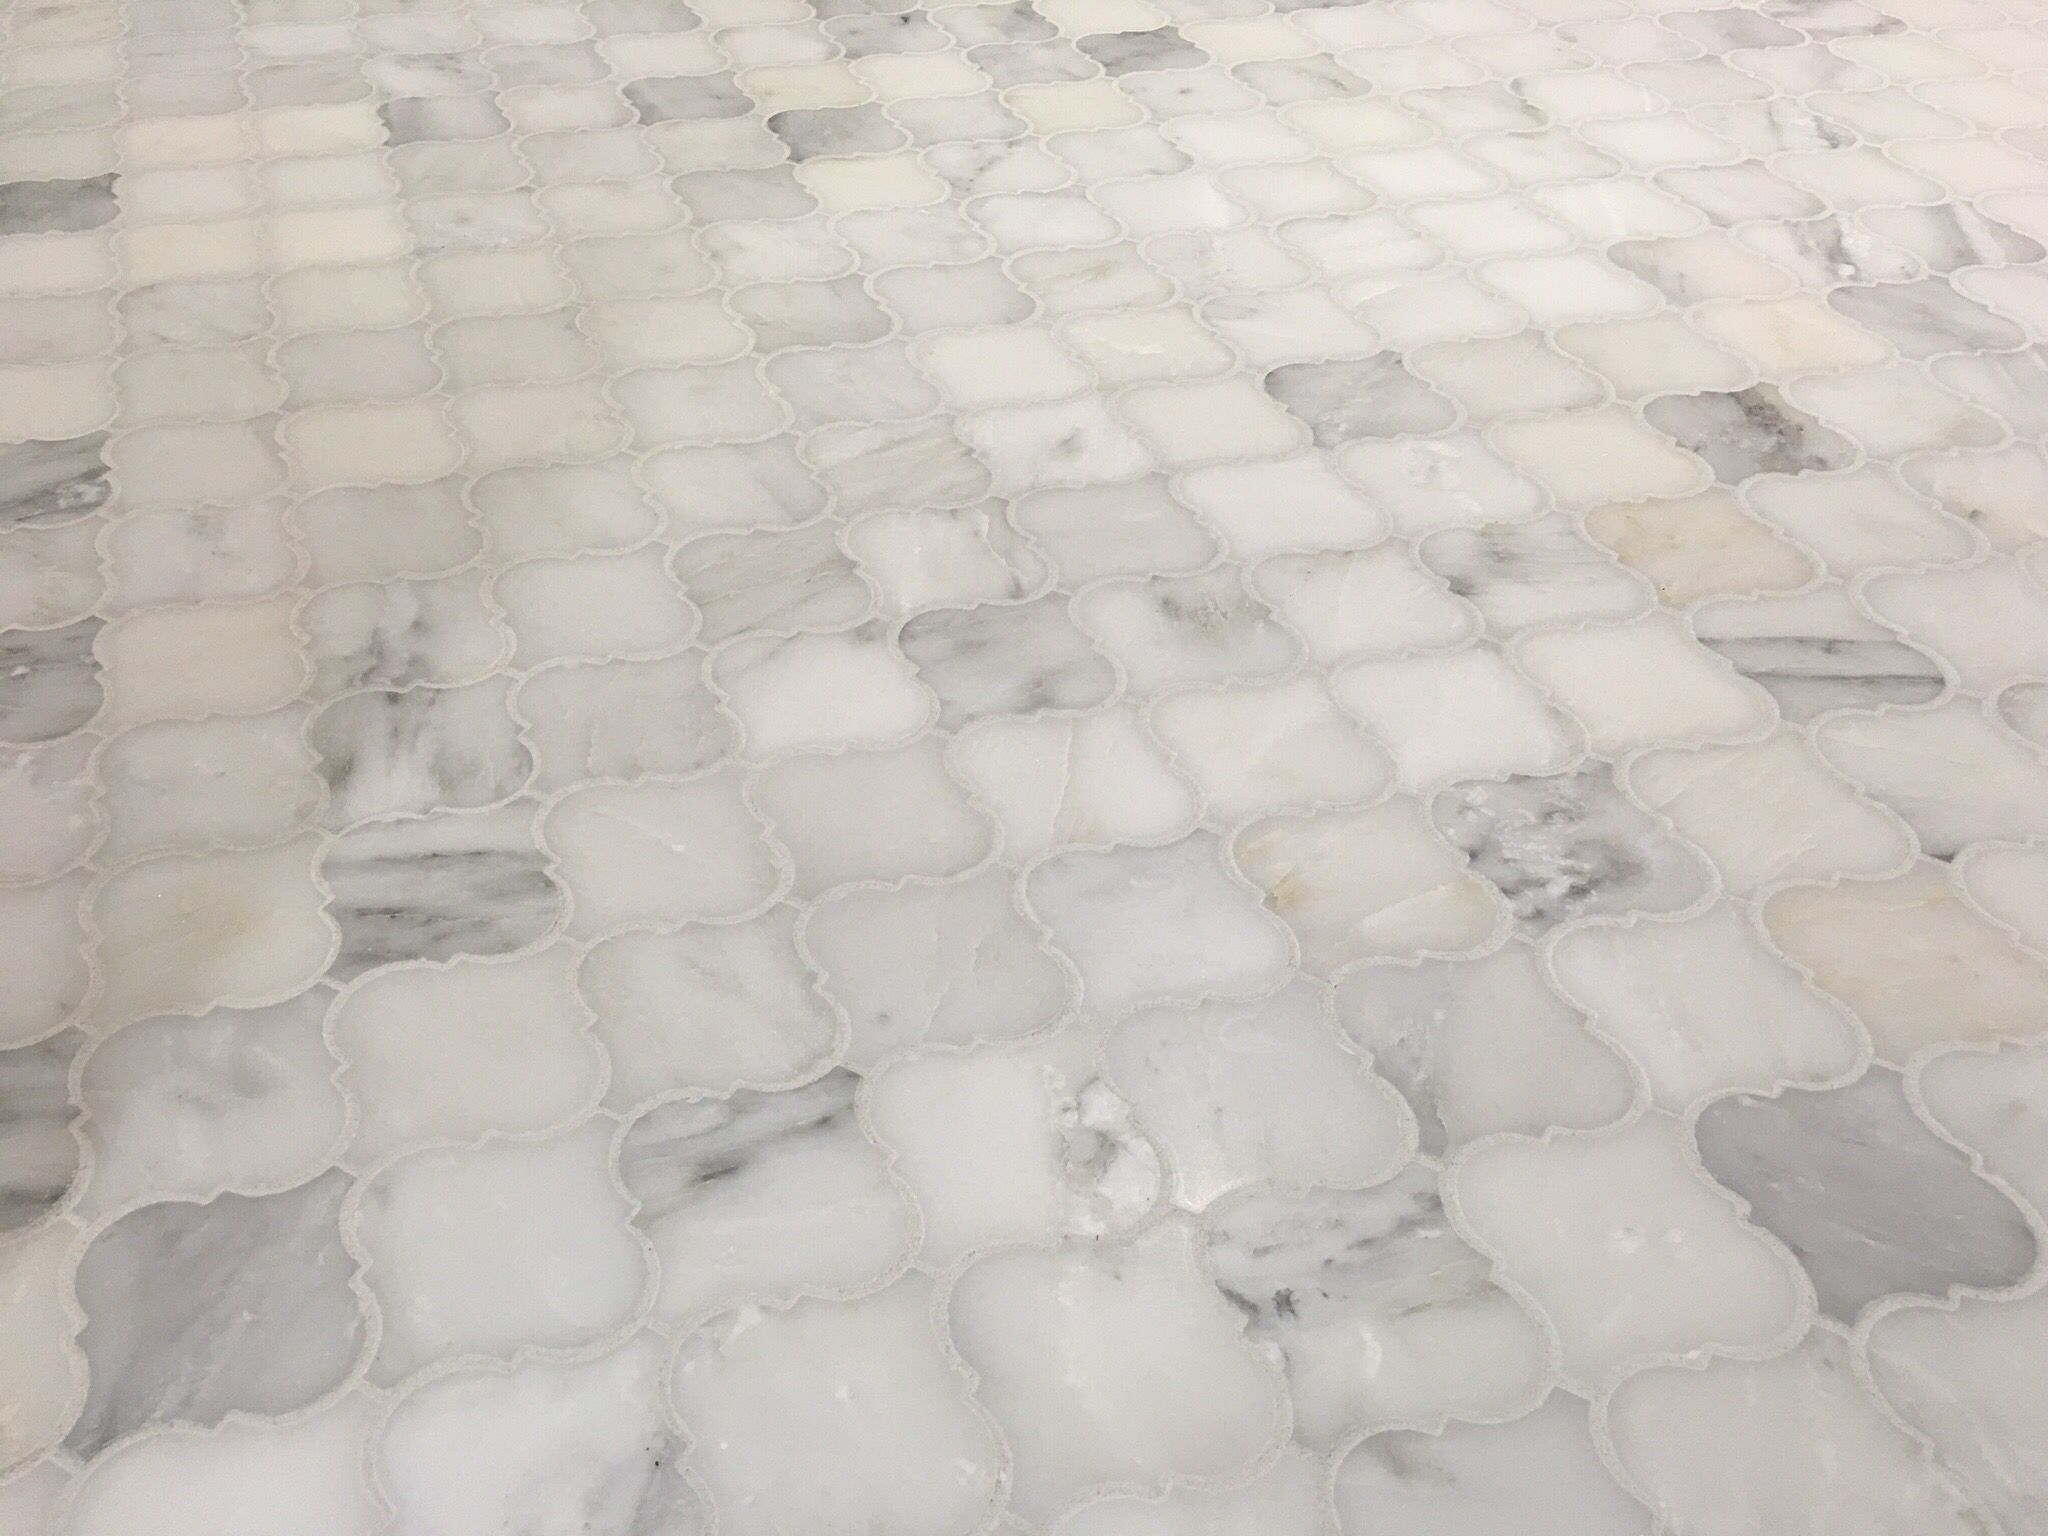 Carrera marble arabesque mosaic tile bathroom floor marble carrera marble arabesque mosaic tile bathroom floor dailygadgetfo Choice Image